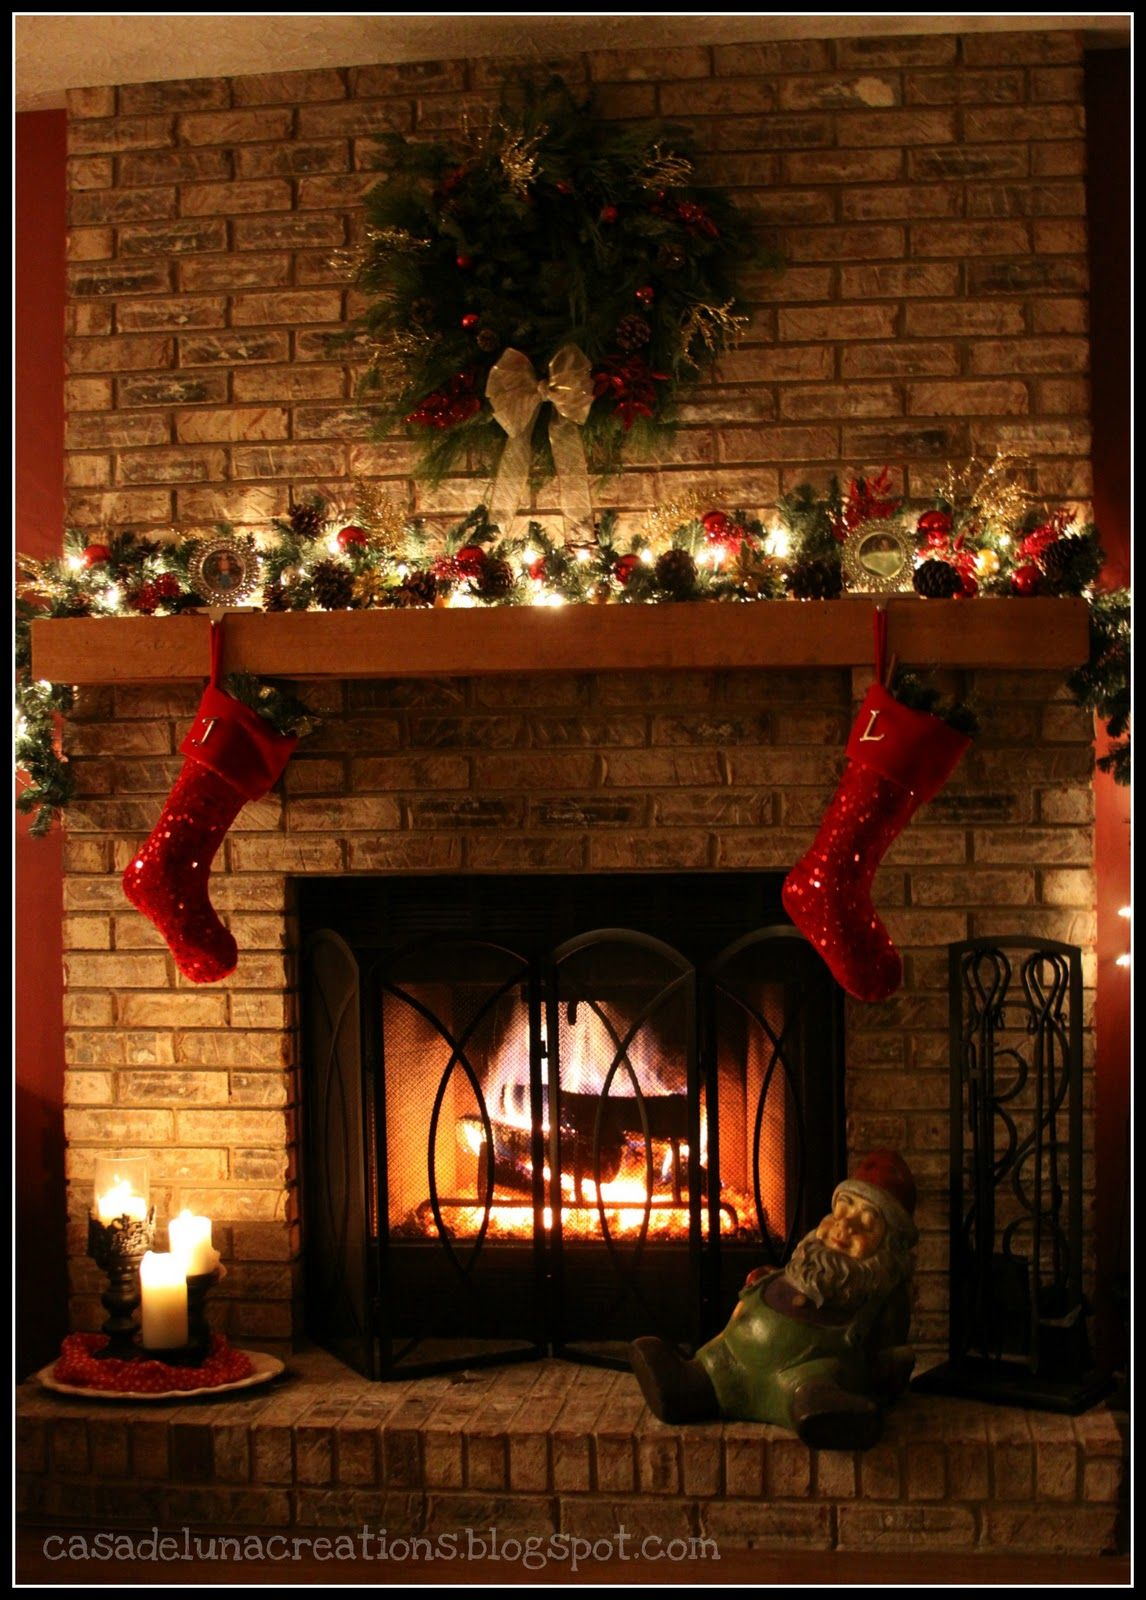 How To Decorate Fireplace Wall Interior Awesome Christmas Mantel Decoration With Red